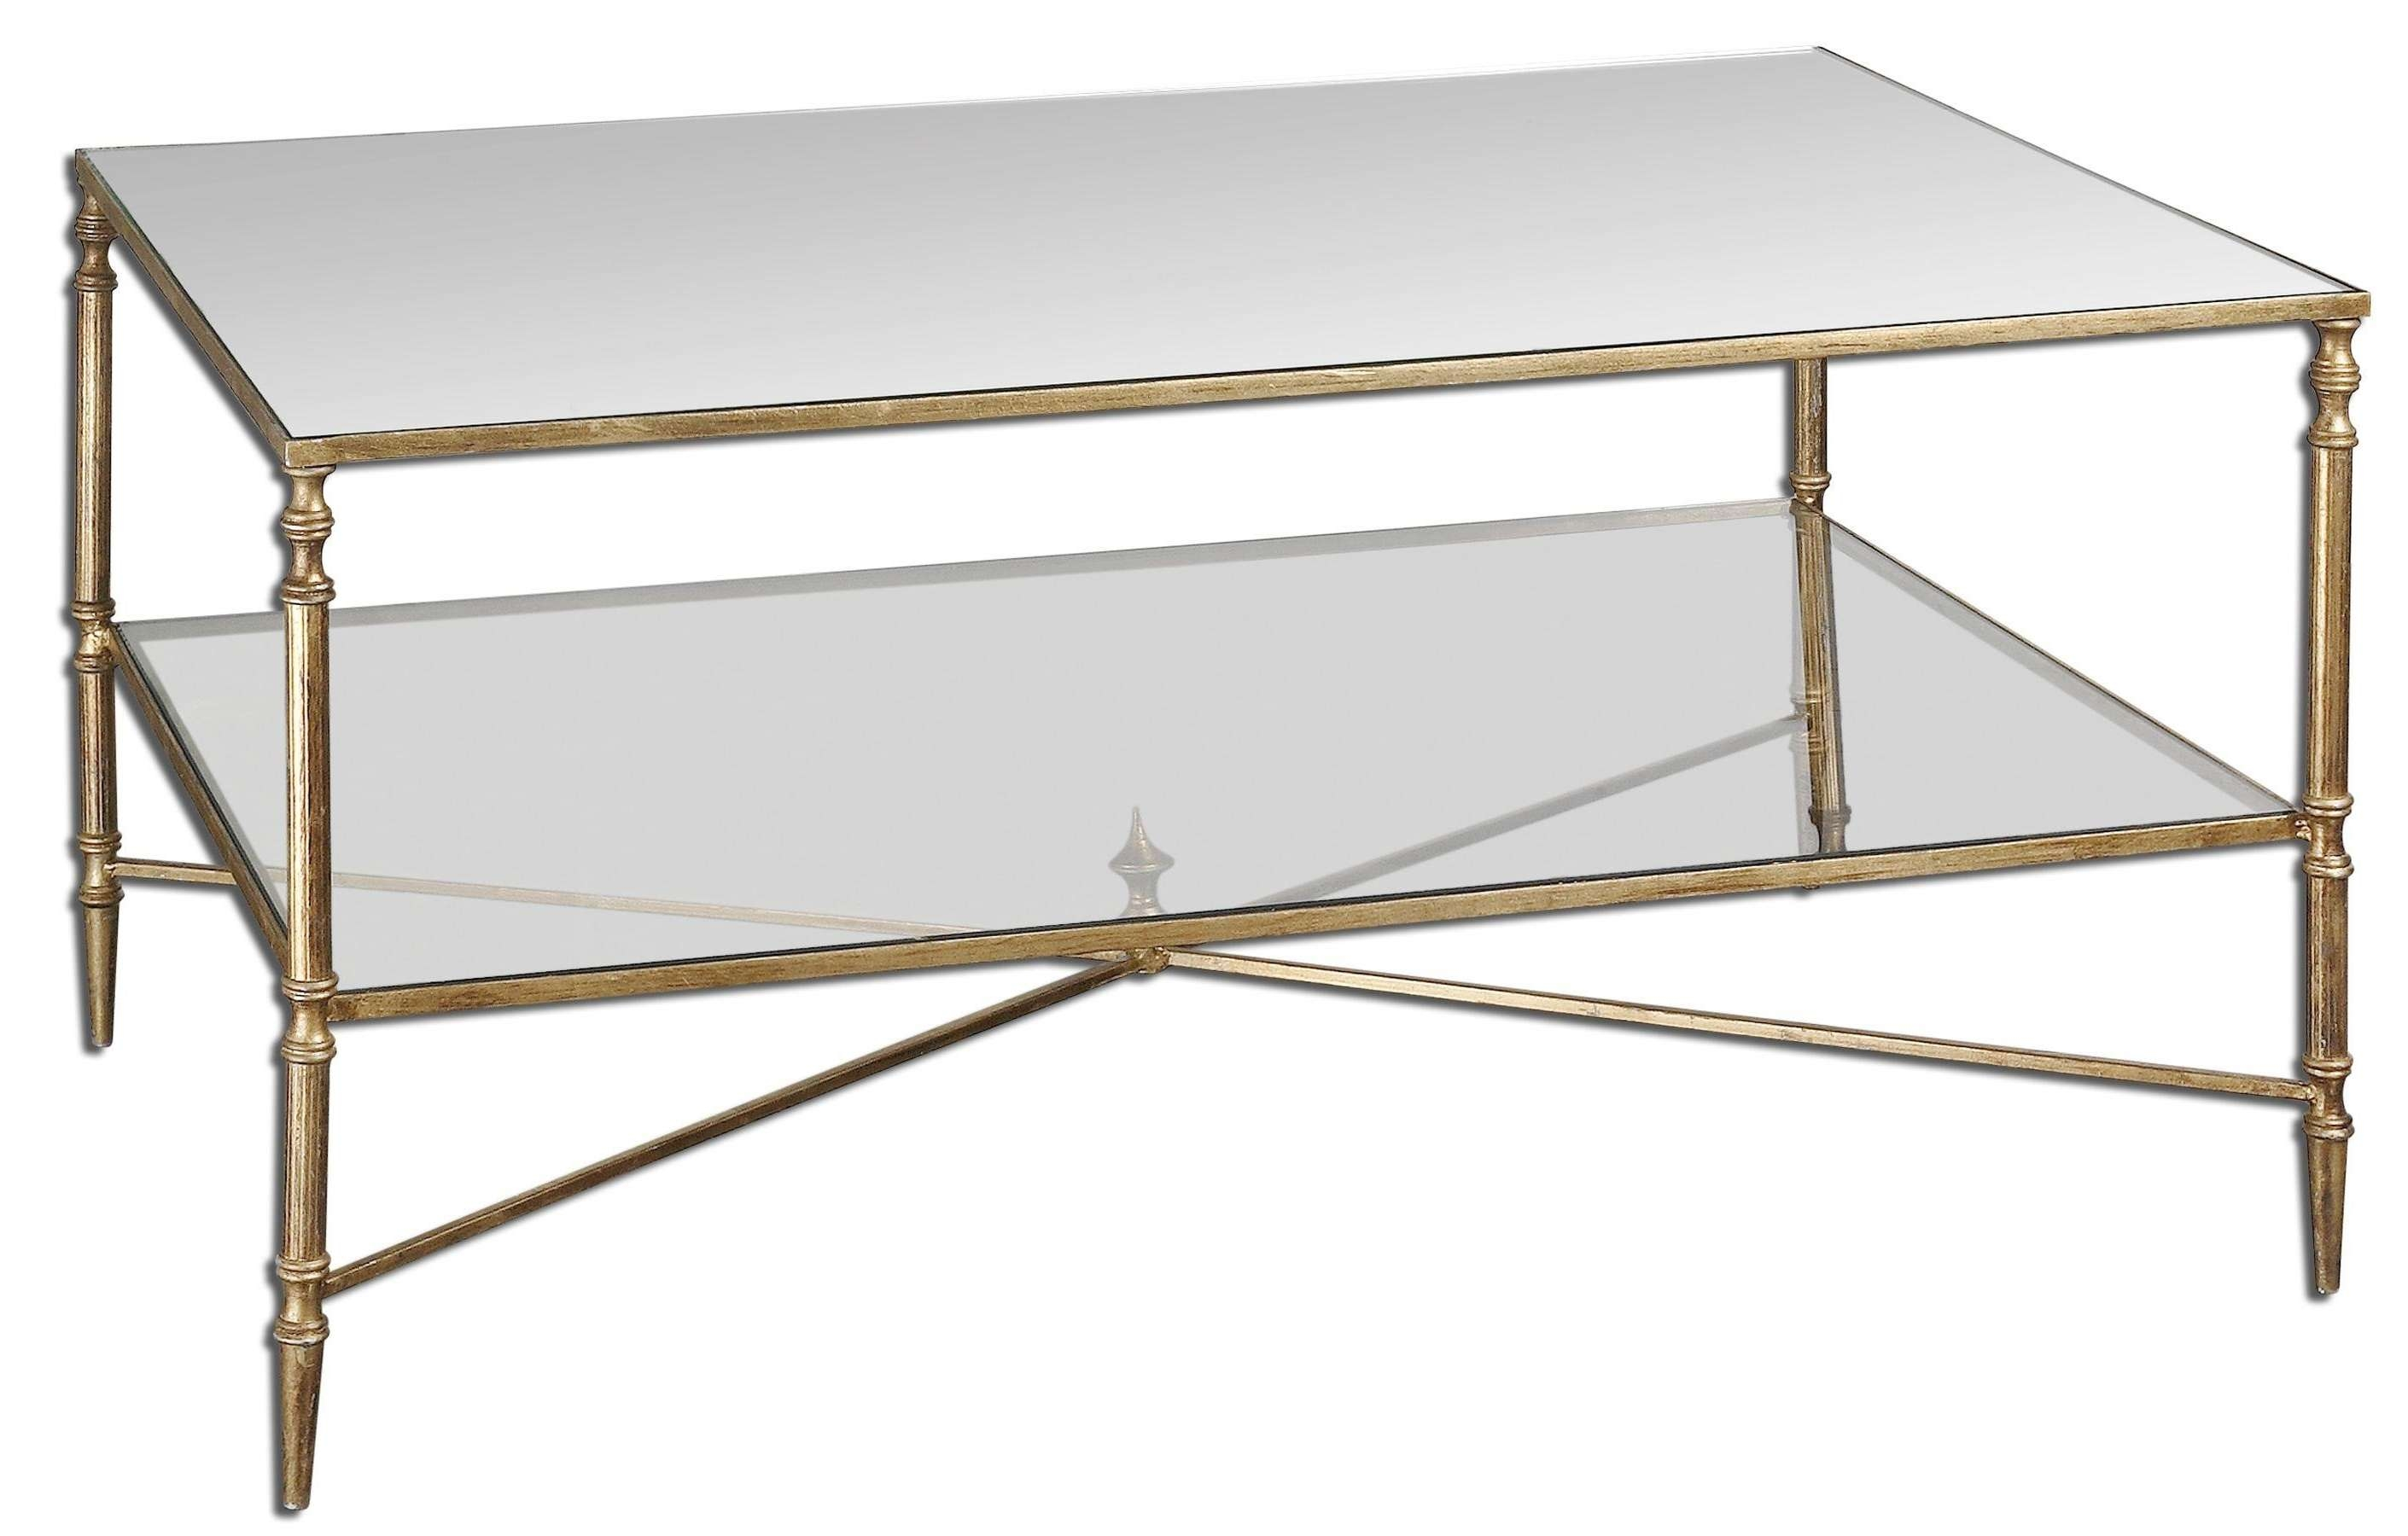 Favorite Antique Glass Coffee Tables Within Clear Rectangle Antique Metal Glass Coffee Table With Shelf (View 11 of 20)